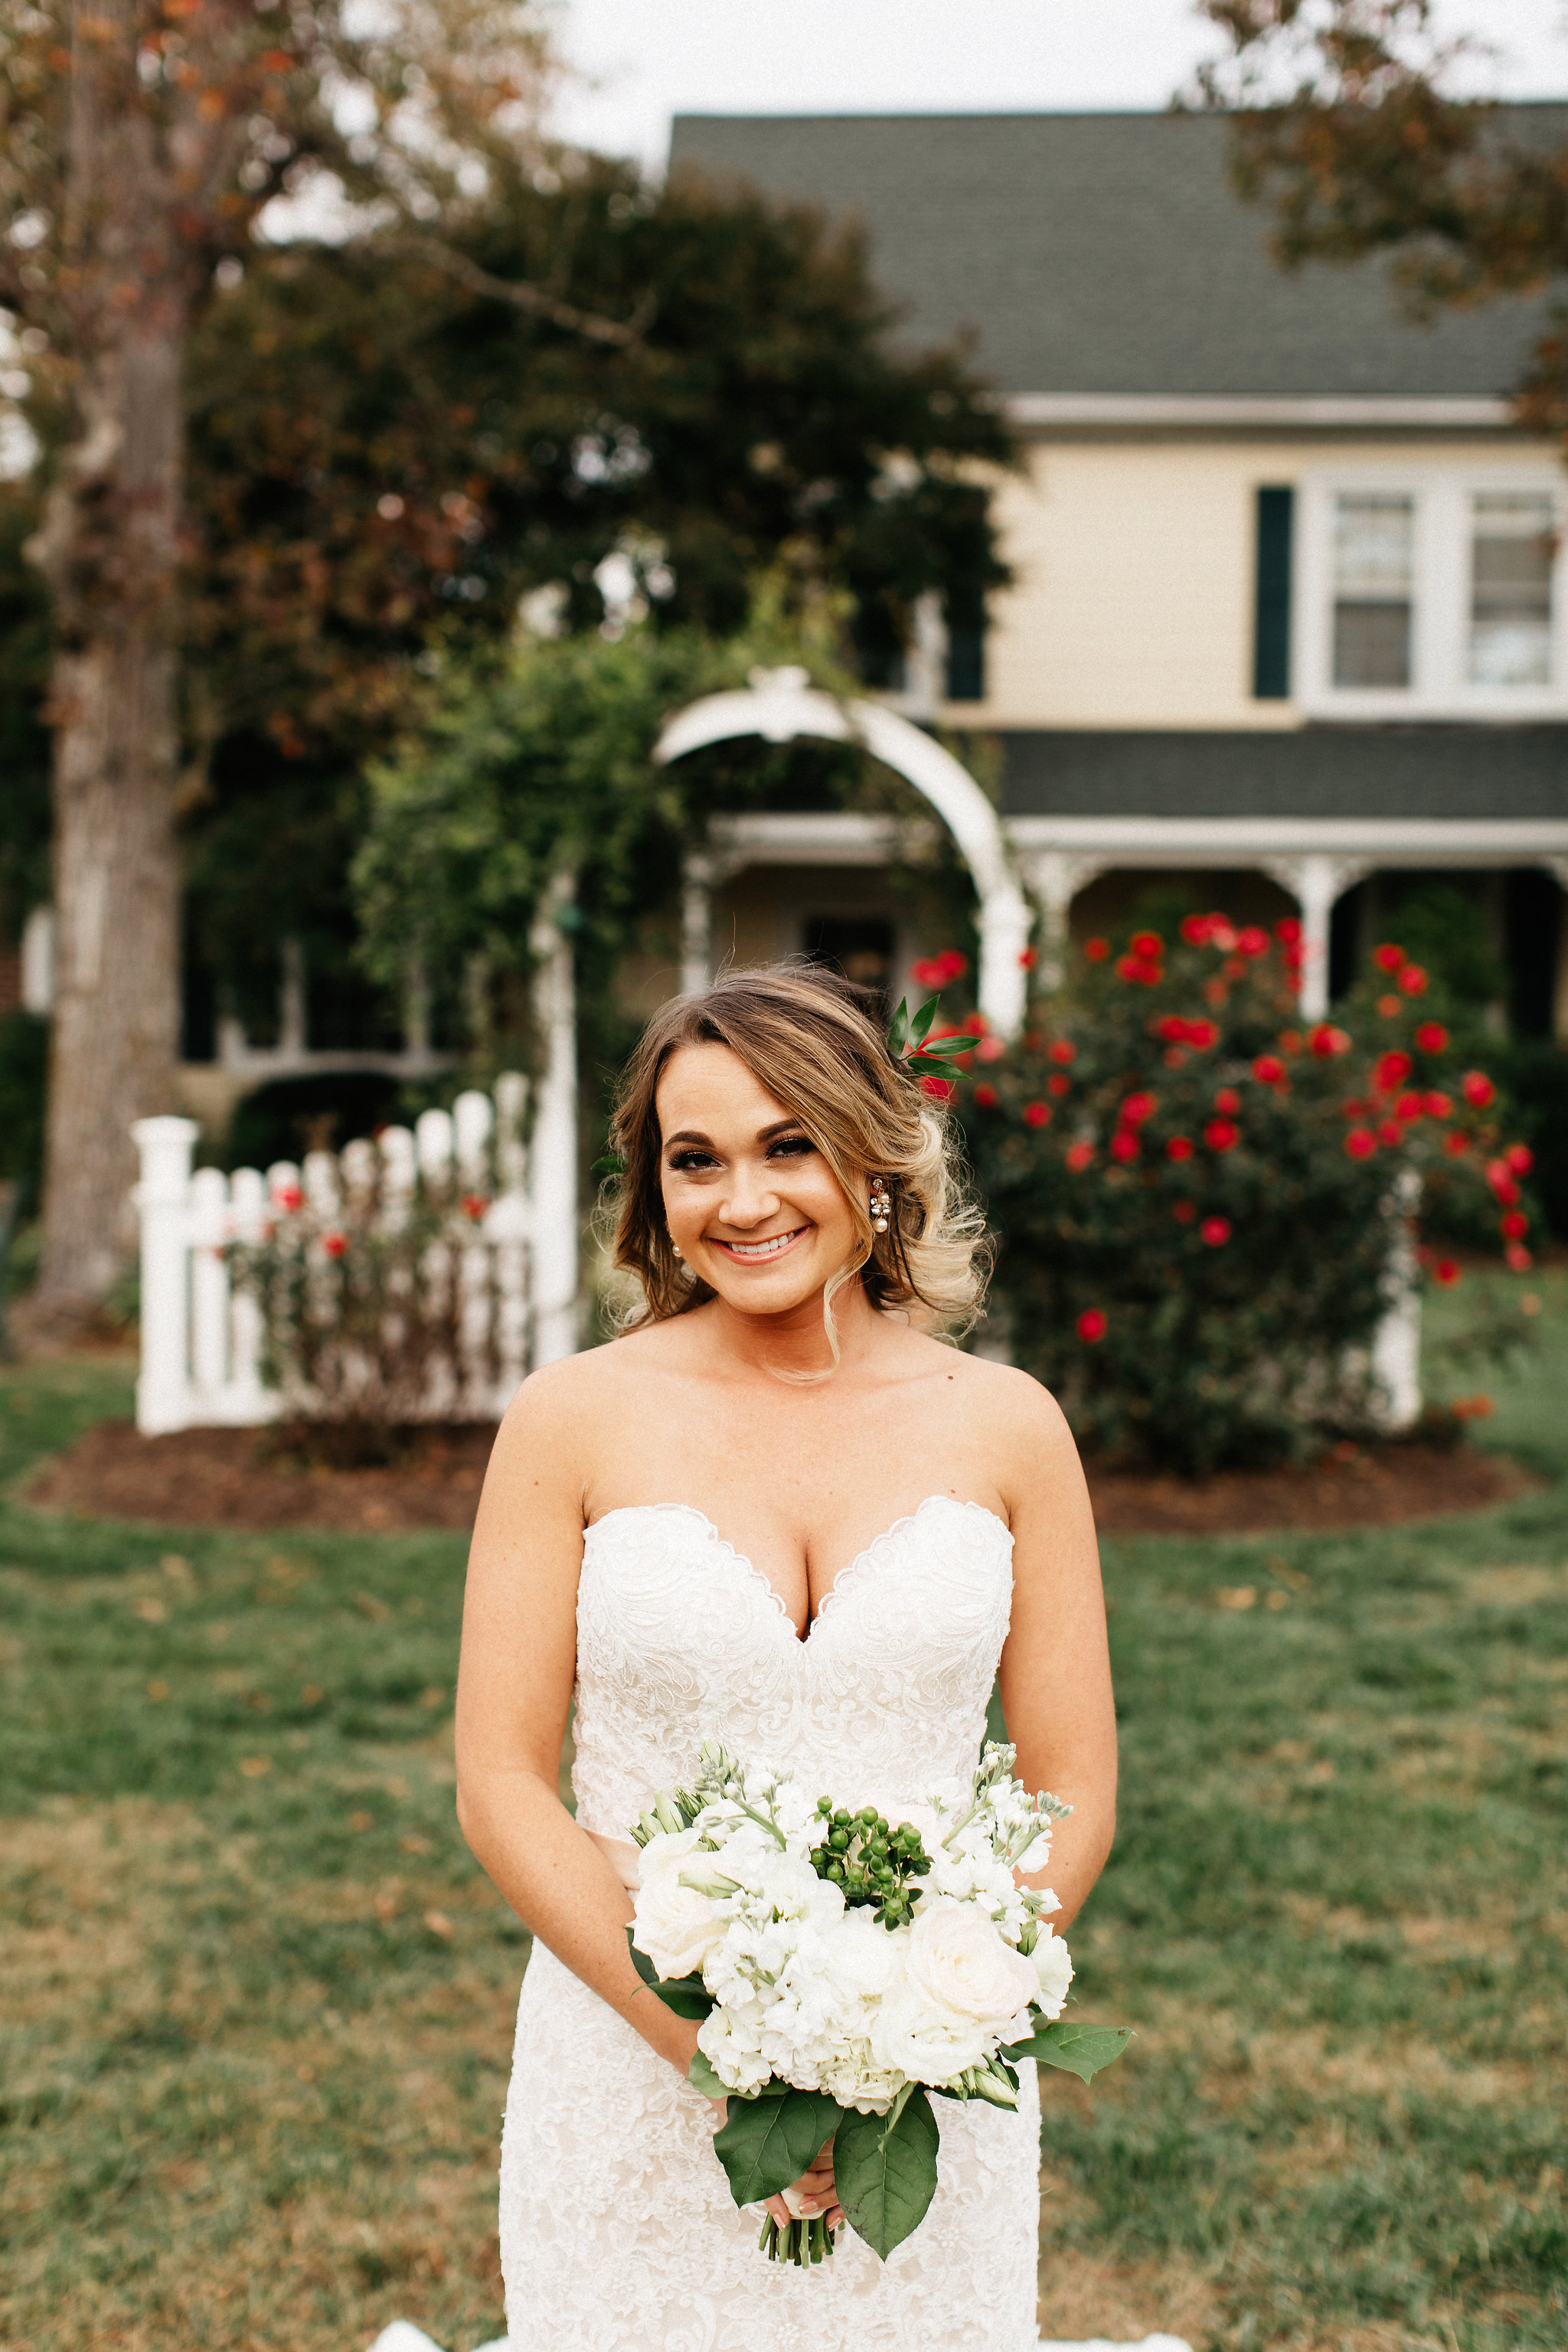 Ashley&NathanMarried2017-11-10at19.26.47PM49.jpg